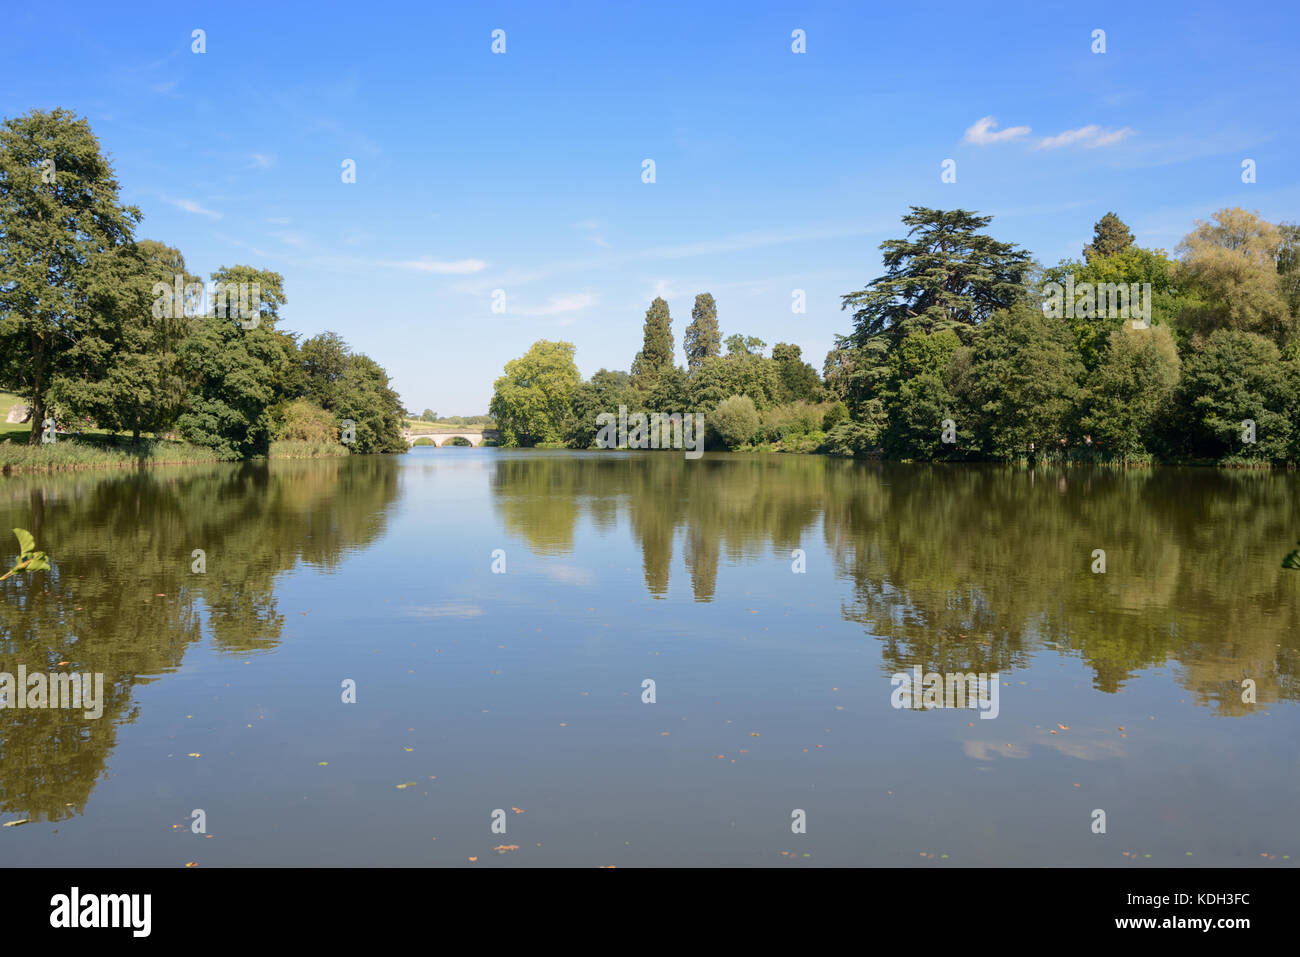 Lake & Parkland designed by Capability Brown at Compton Verney House (1714) or Country Estate, Warwickshire, - Stock Image